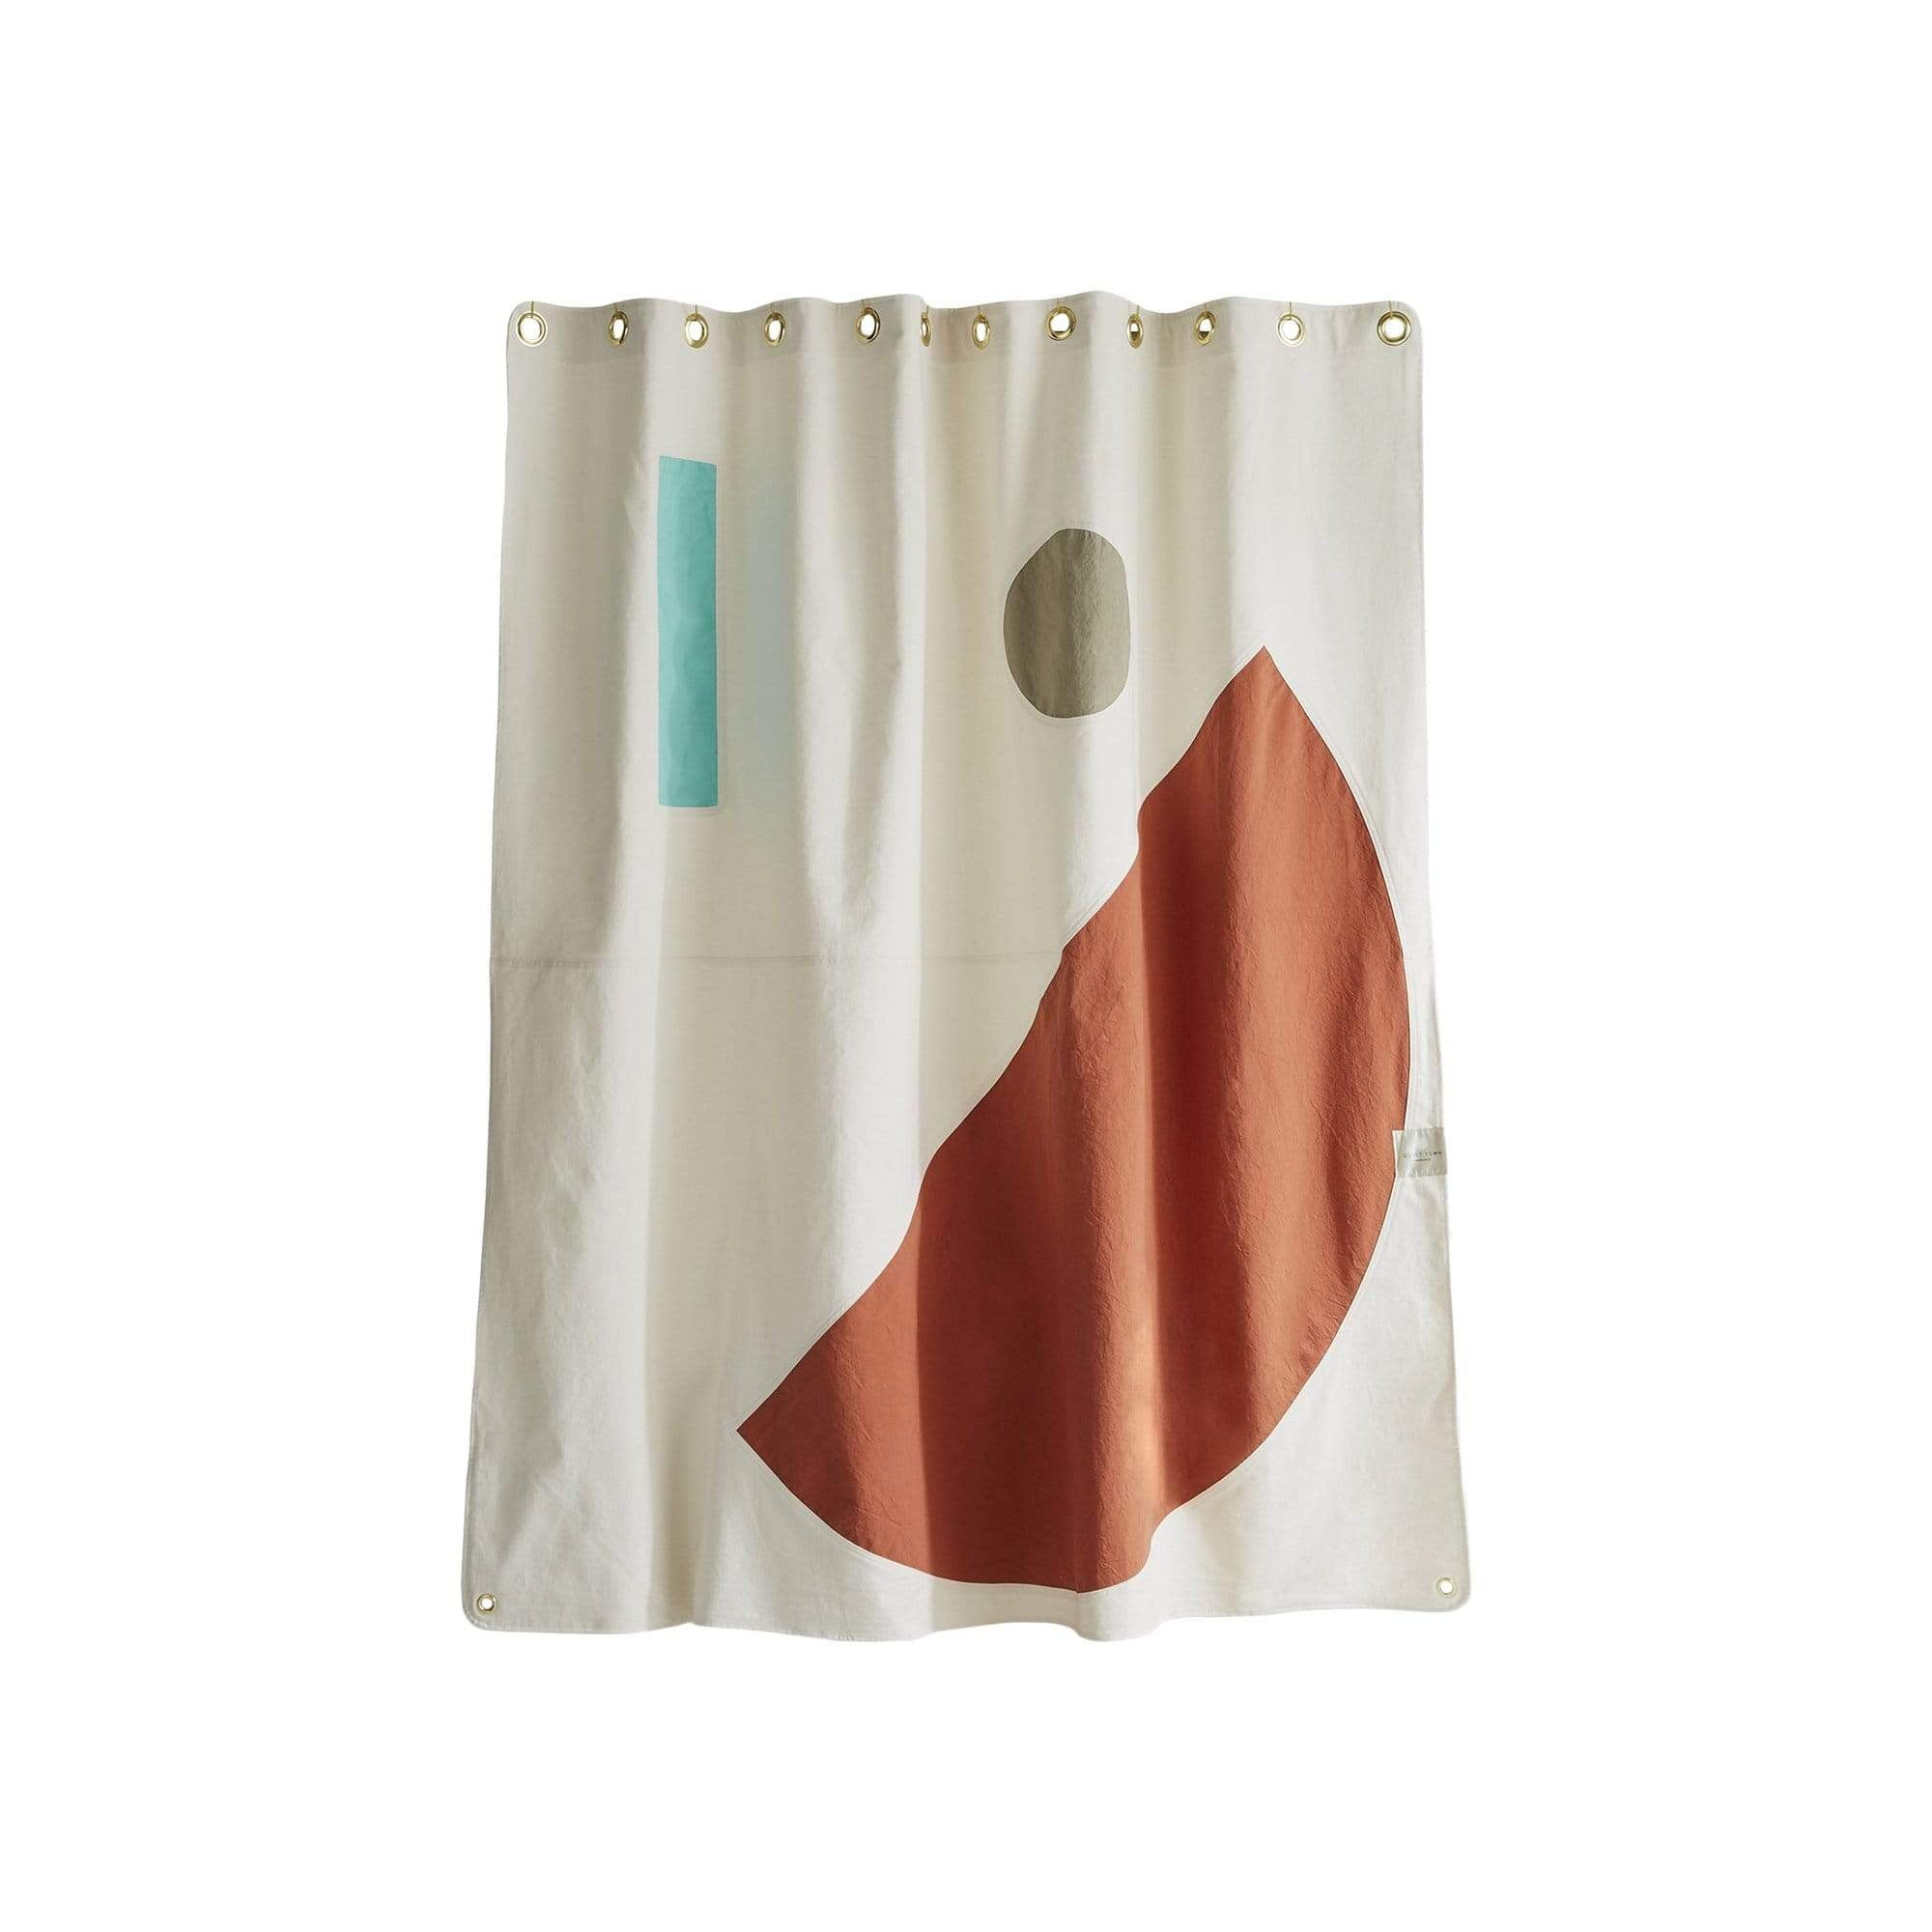 Quiet Town Bath Mats + Curtains Beacon Clay Shower Curtain